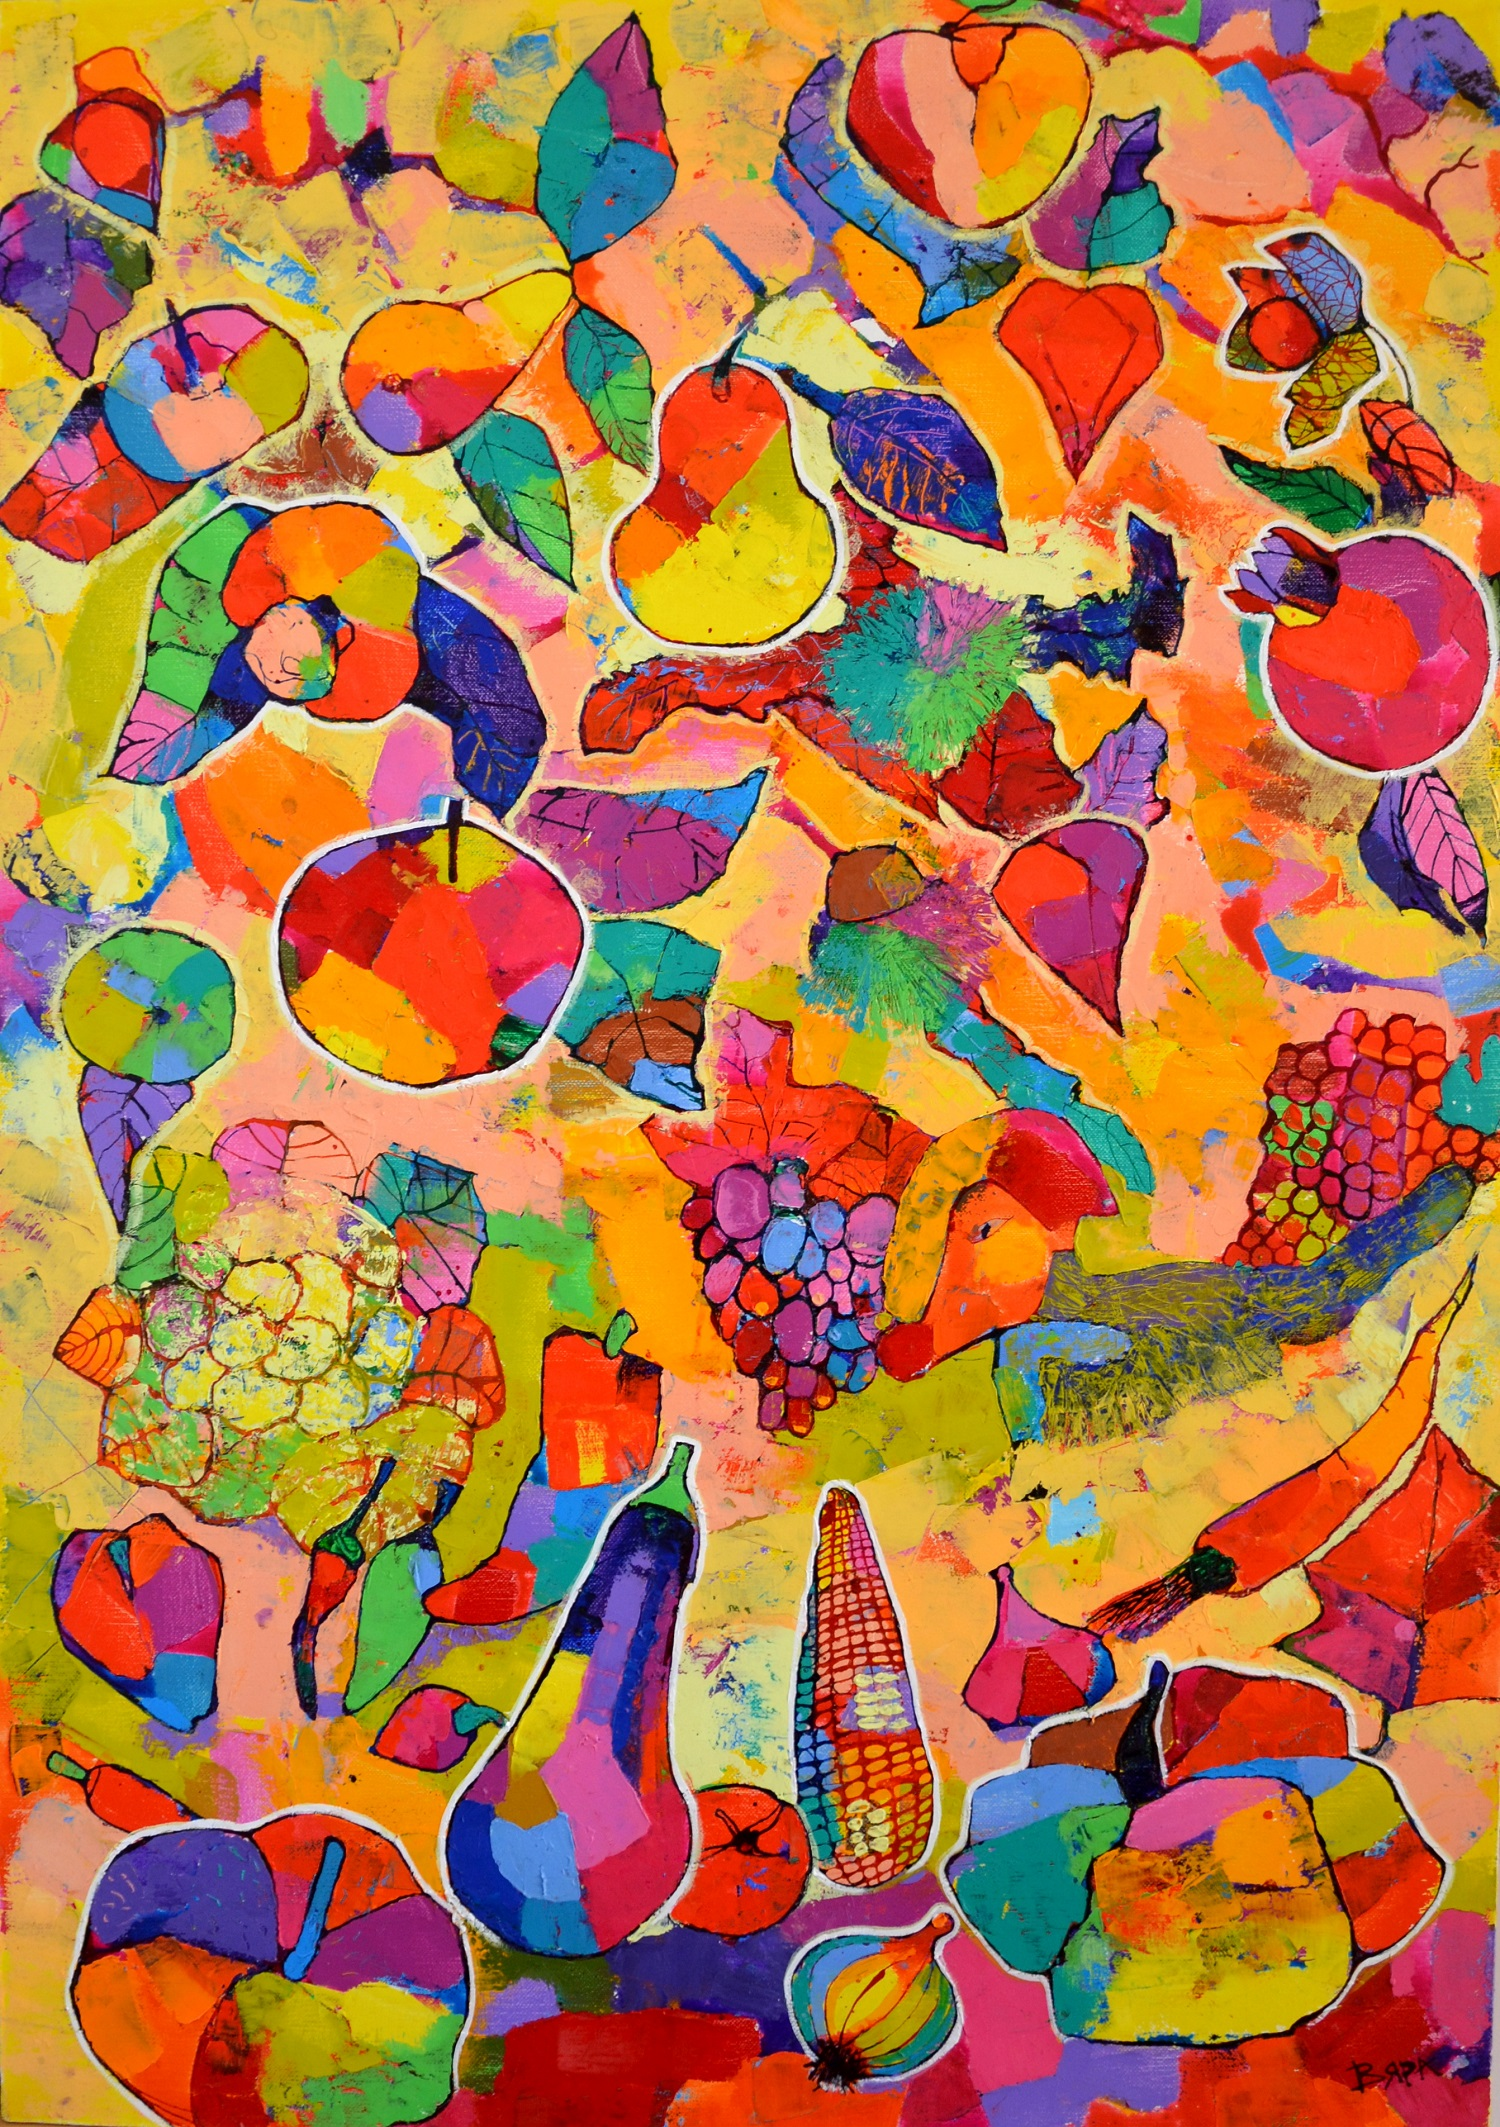 Vyara Tichkova: 'fruits', 2019 Oil Painting, Food. Artist Description: vyara tichkova, oil, canvas, painting, fruits, autumn, colorful, vegetables, apple, pear, eggplant, pumpkin, tomato, gabagge, pepper, onion, carrot, fox, grape, ...